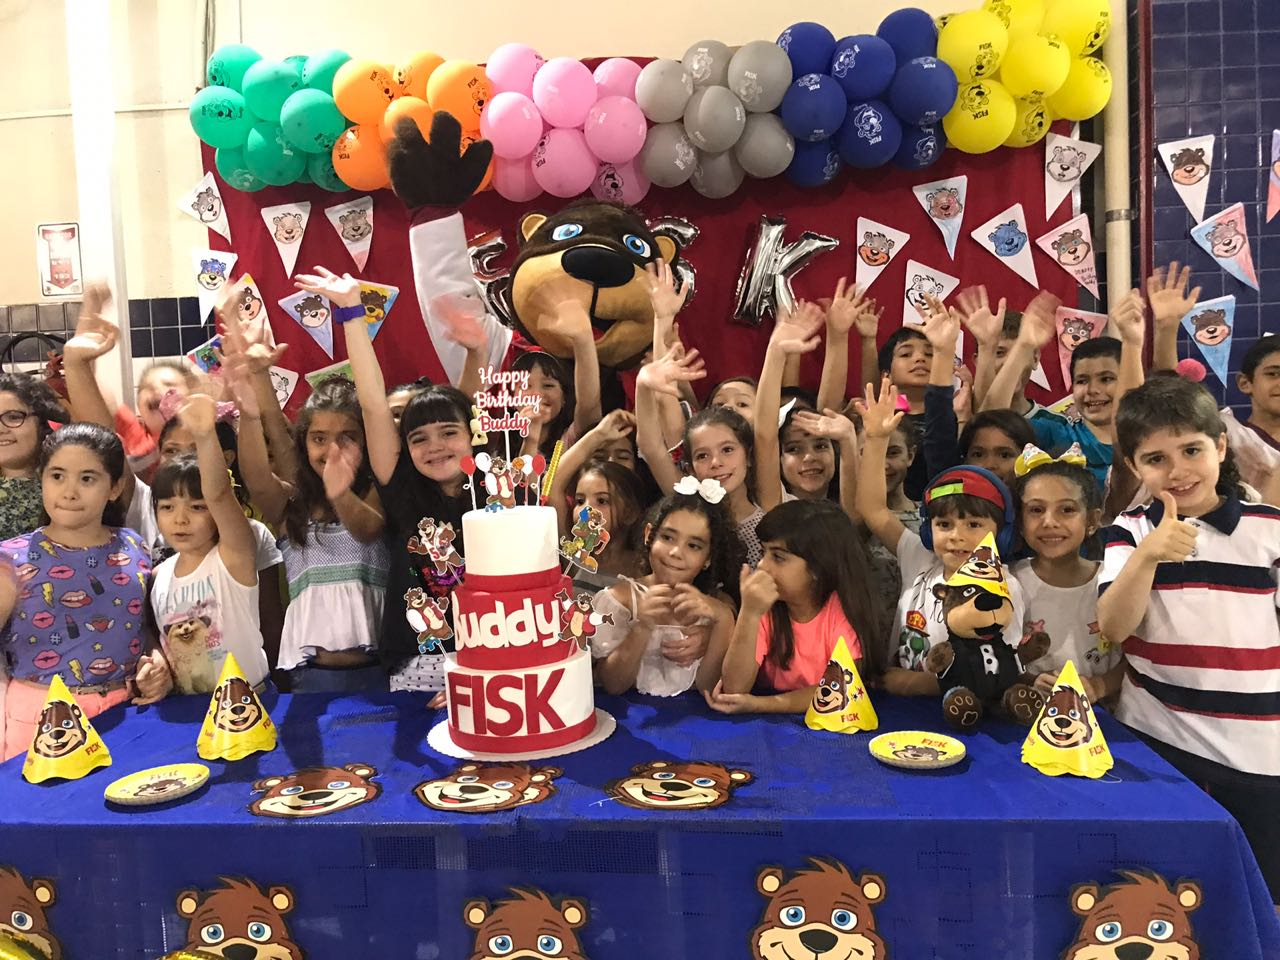 Fisk Fortaleza (Aldeota)/CE - Buddy's surprise party!